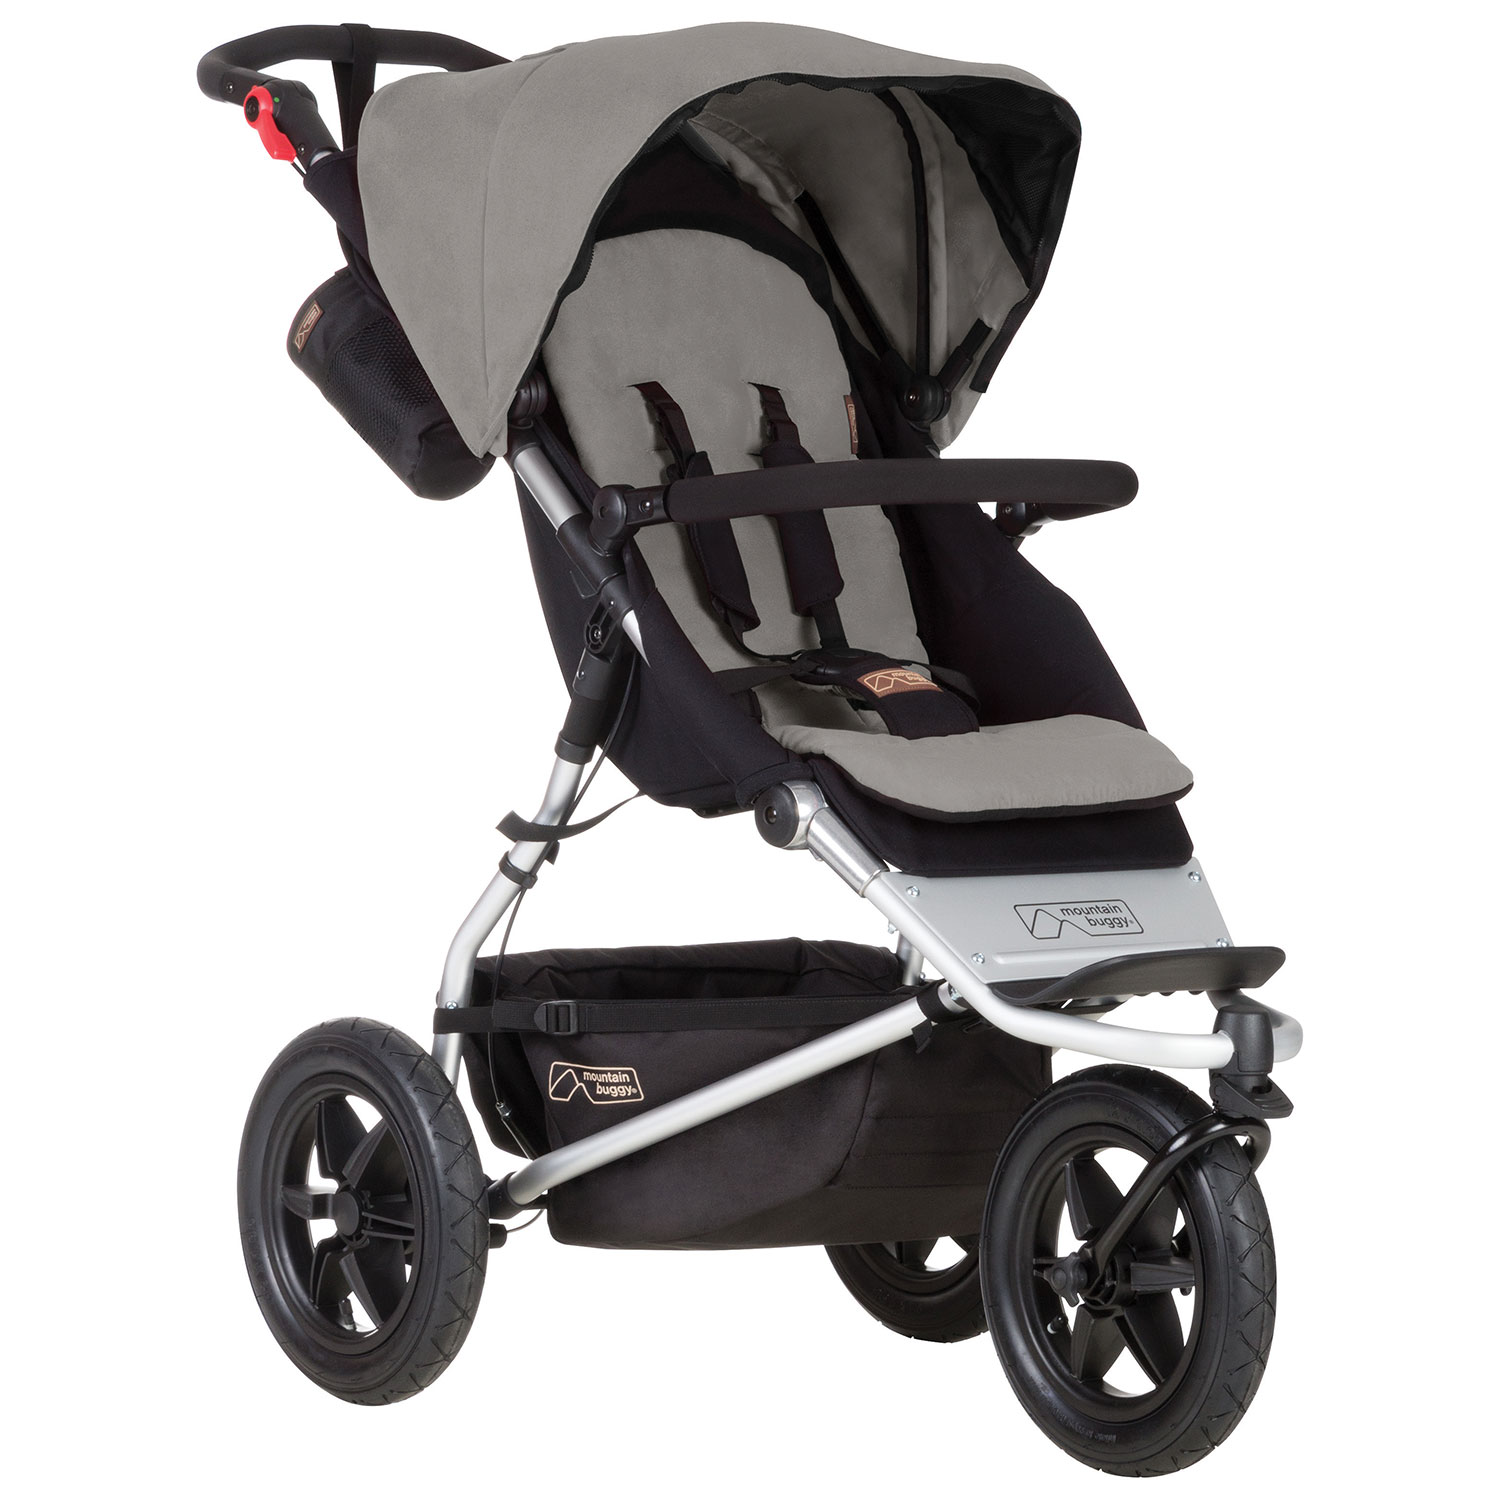 stroller buying guide - mountain buggy all terrain stroller